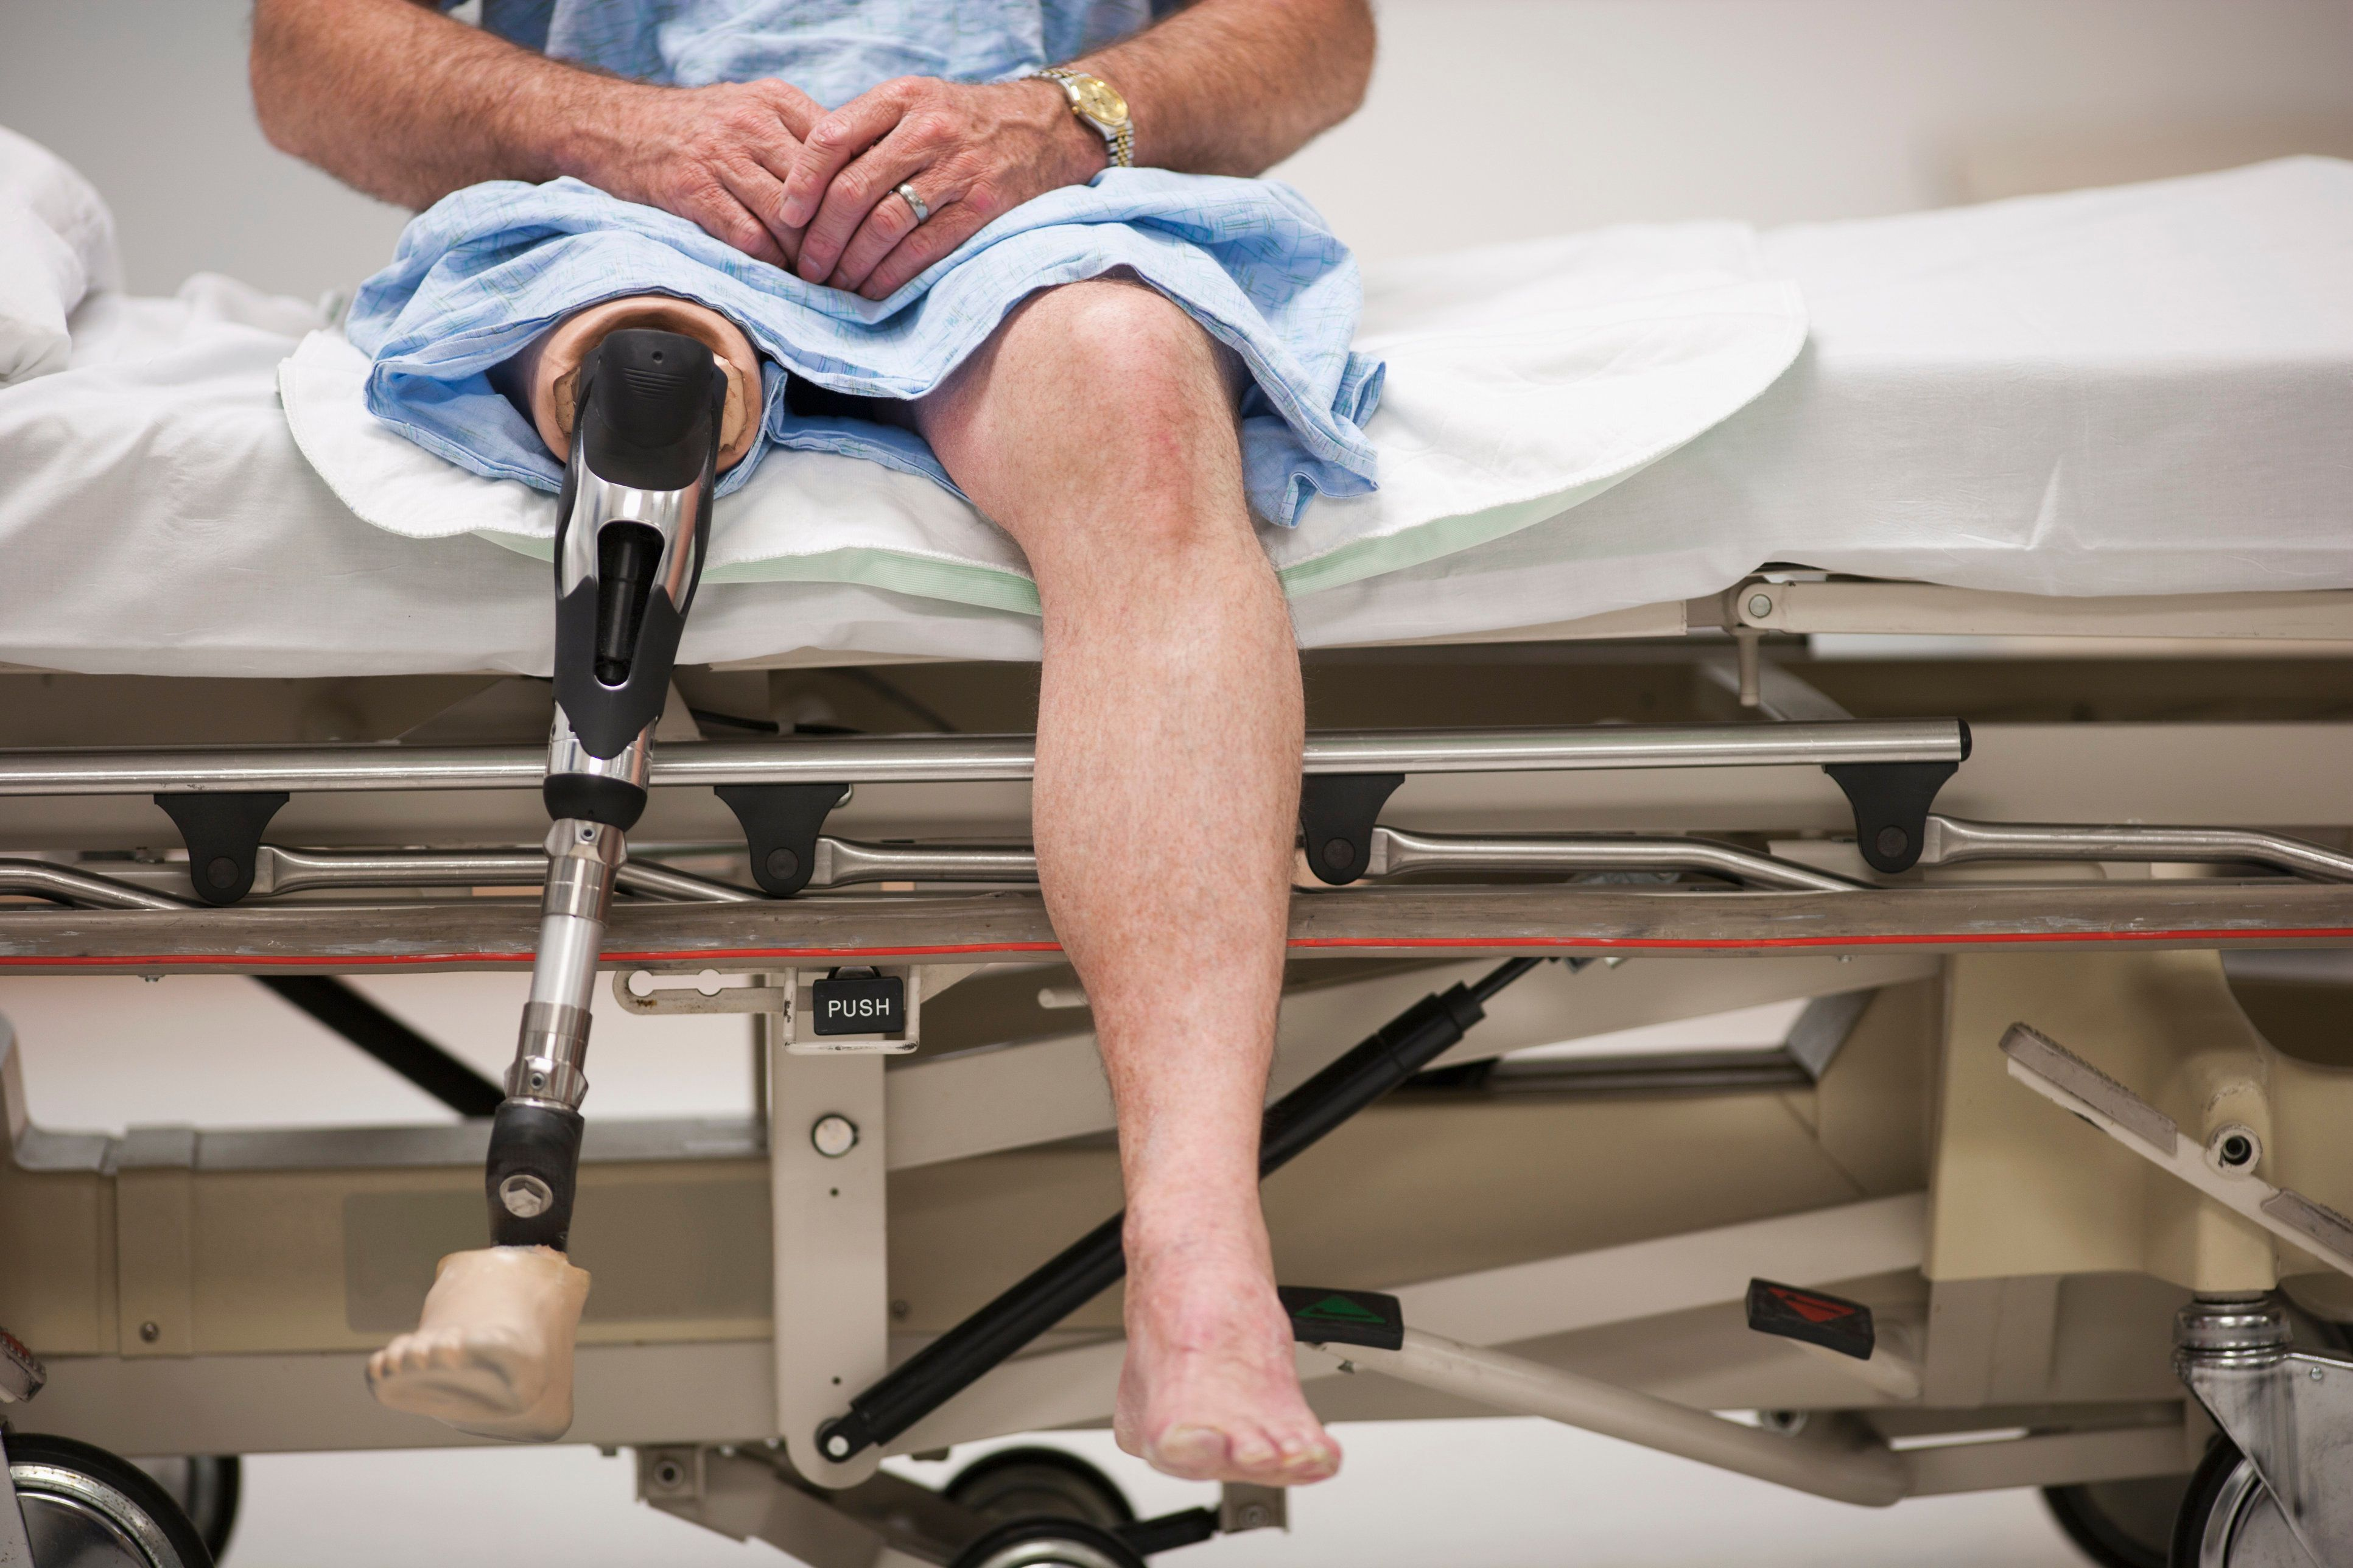 Patient with artificial leg sitting on hospital bed